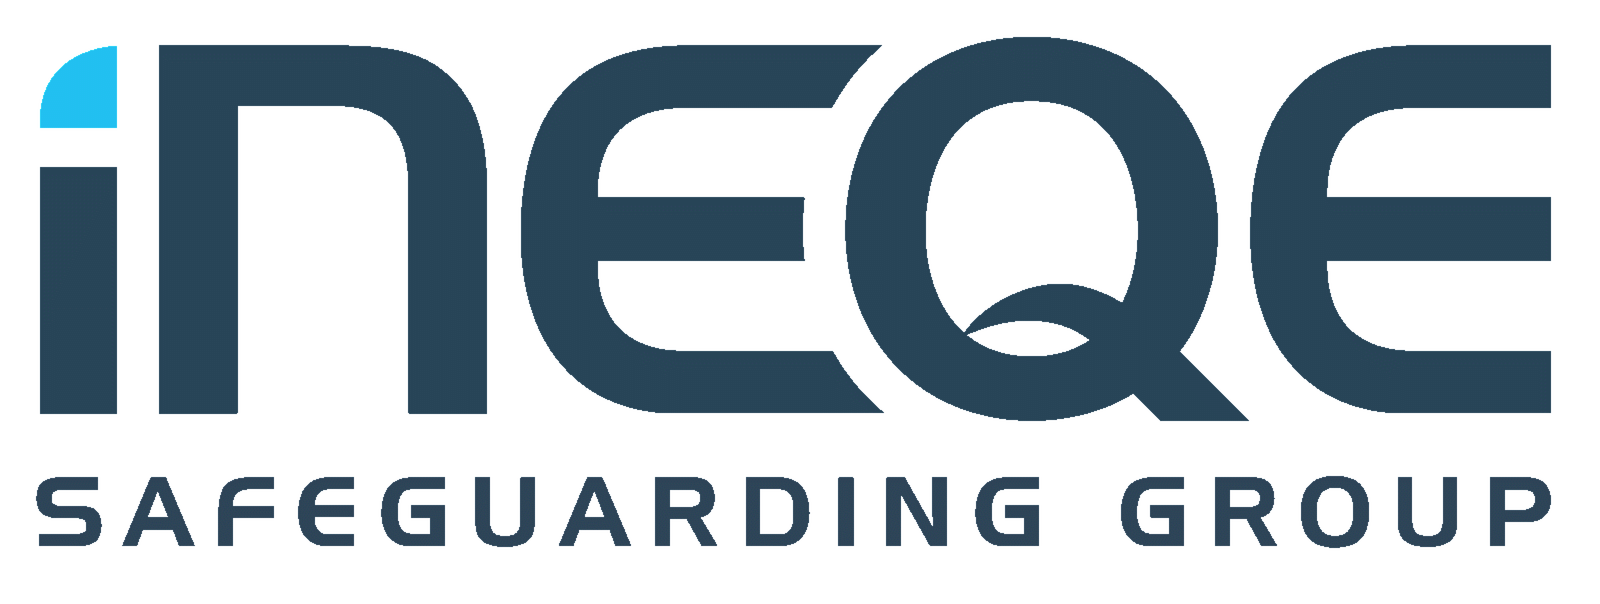 Ineqe Safeguarding group